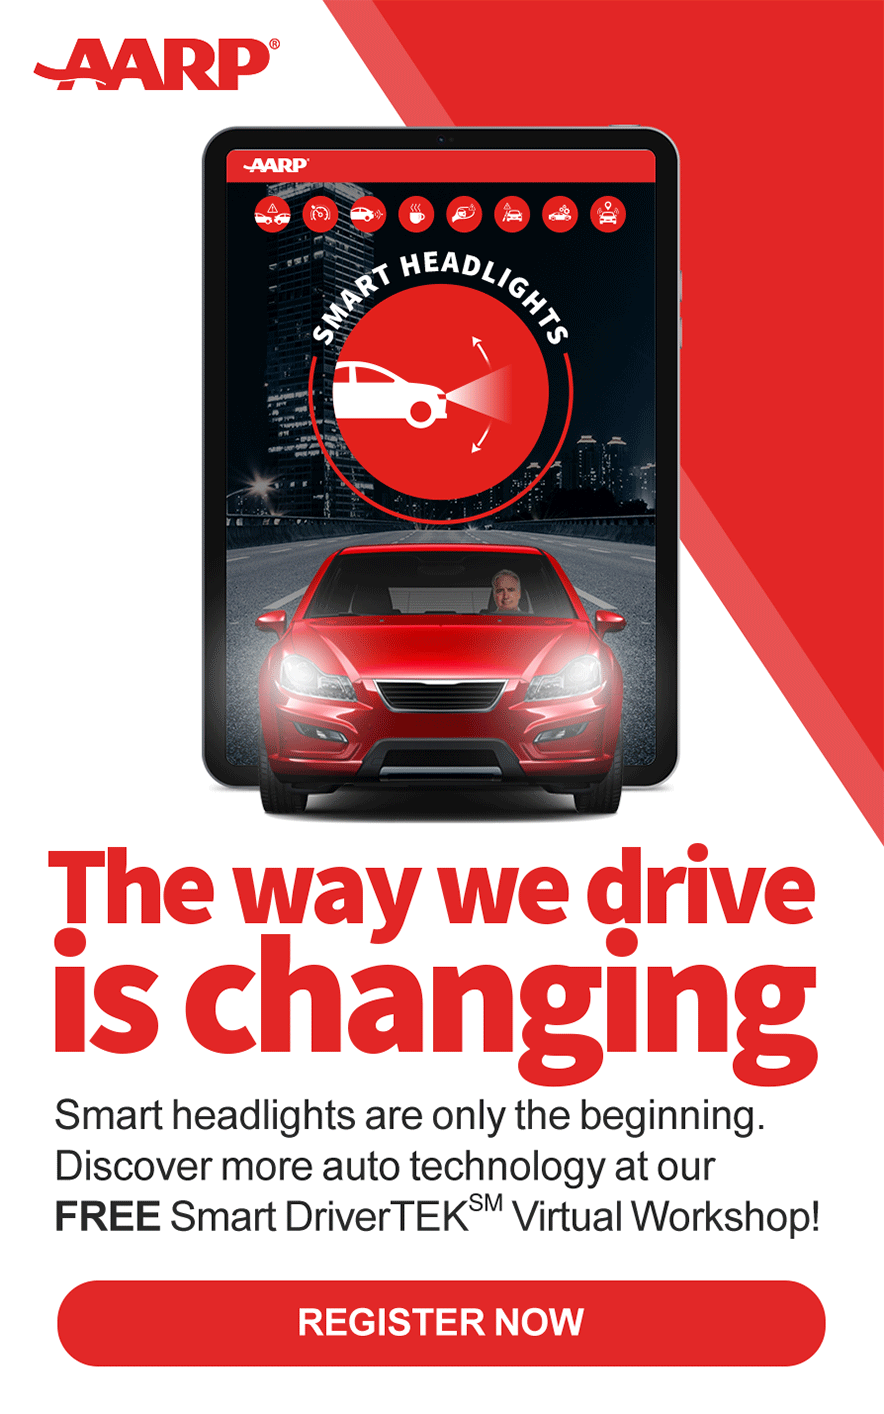 The way we drive is changing.